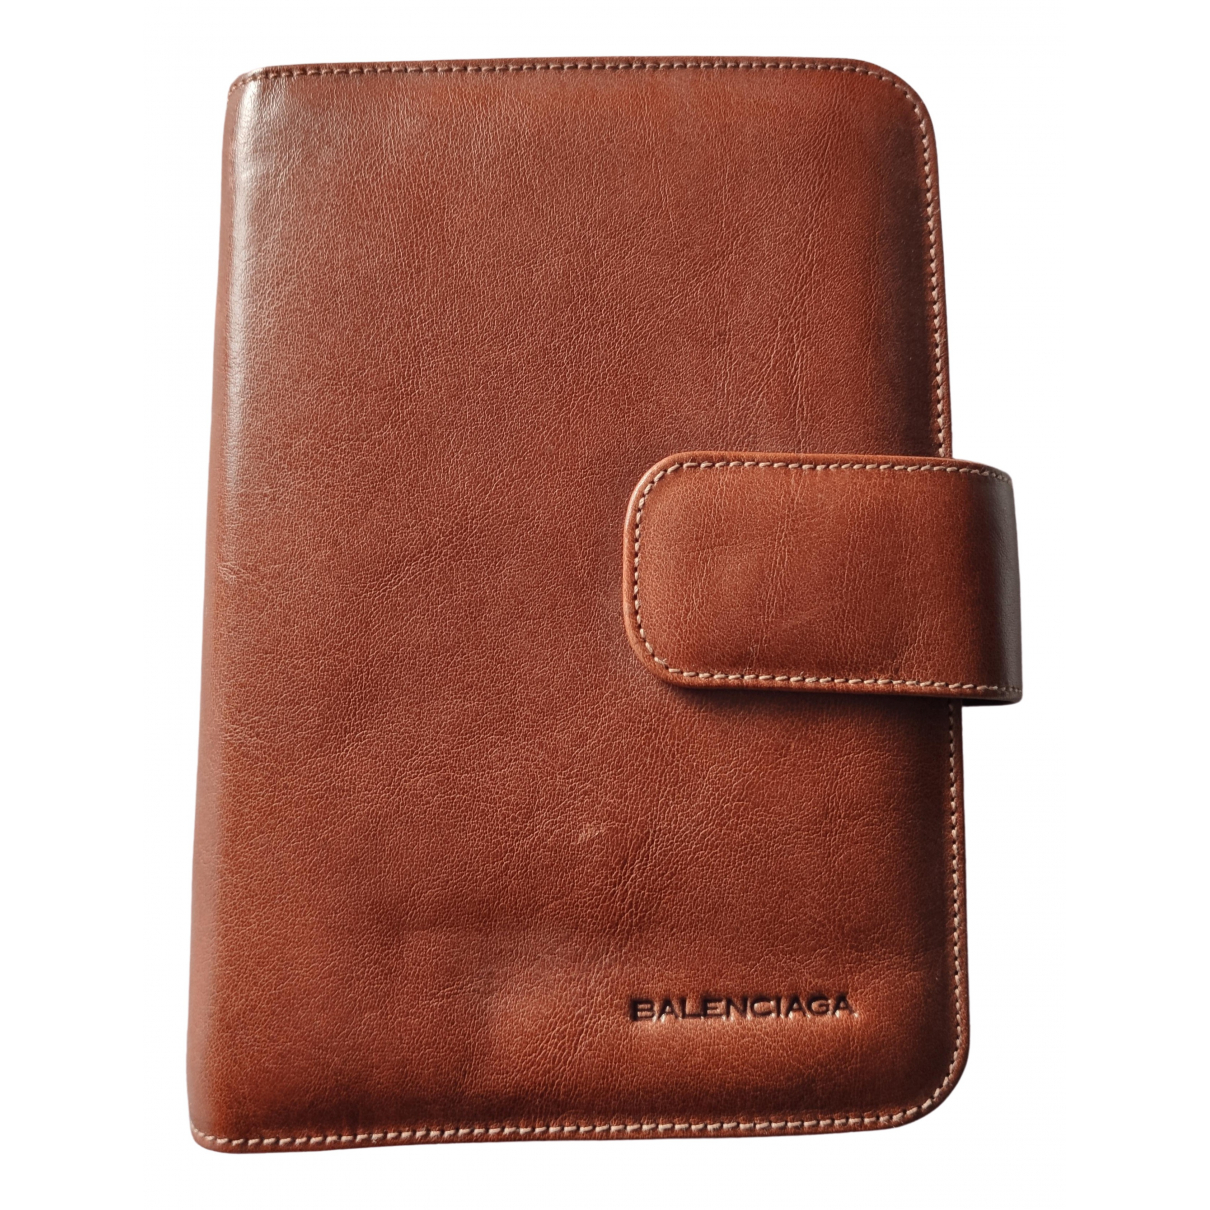 Balenciaga \N Brown Leather Purses, wallet & cases for Women \N